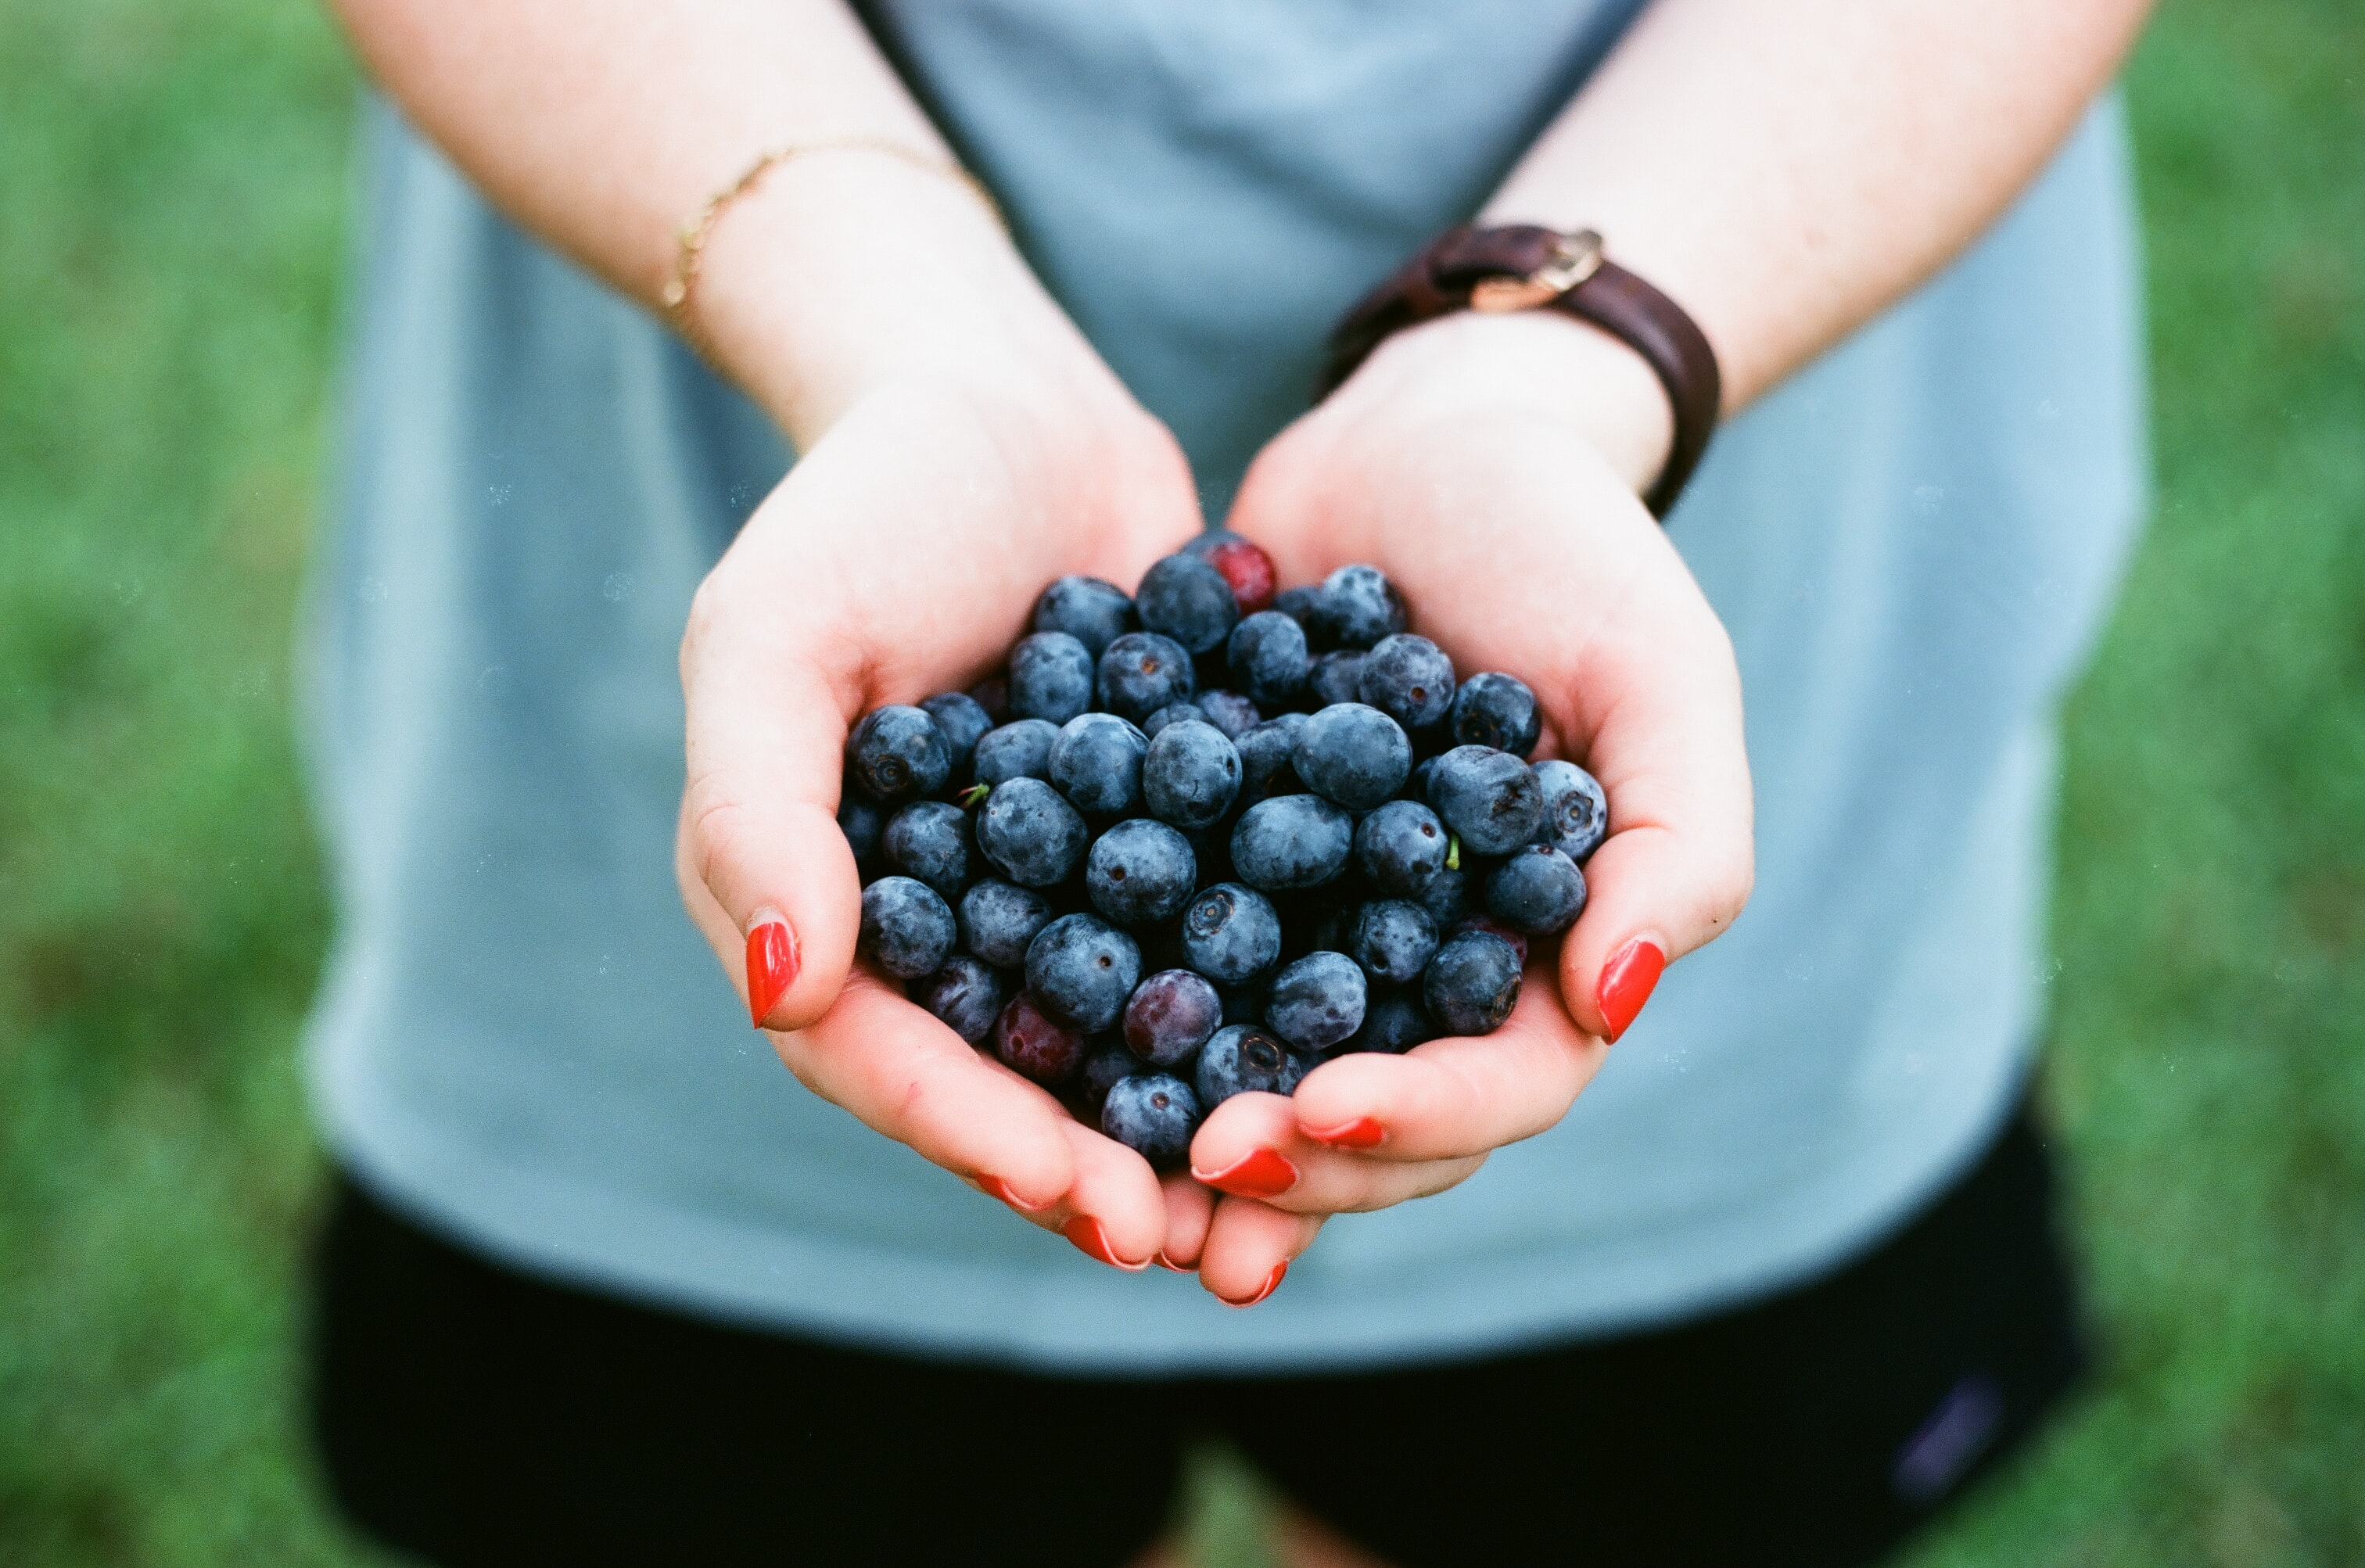 Hands hold a bunch of freshly picked blueberries